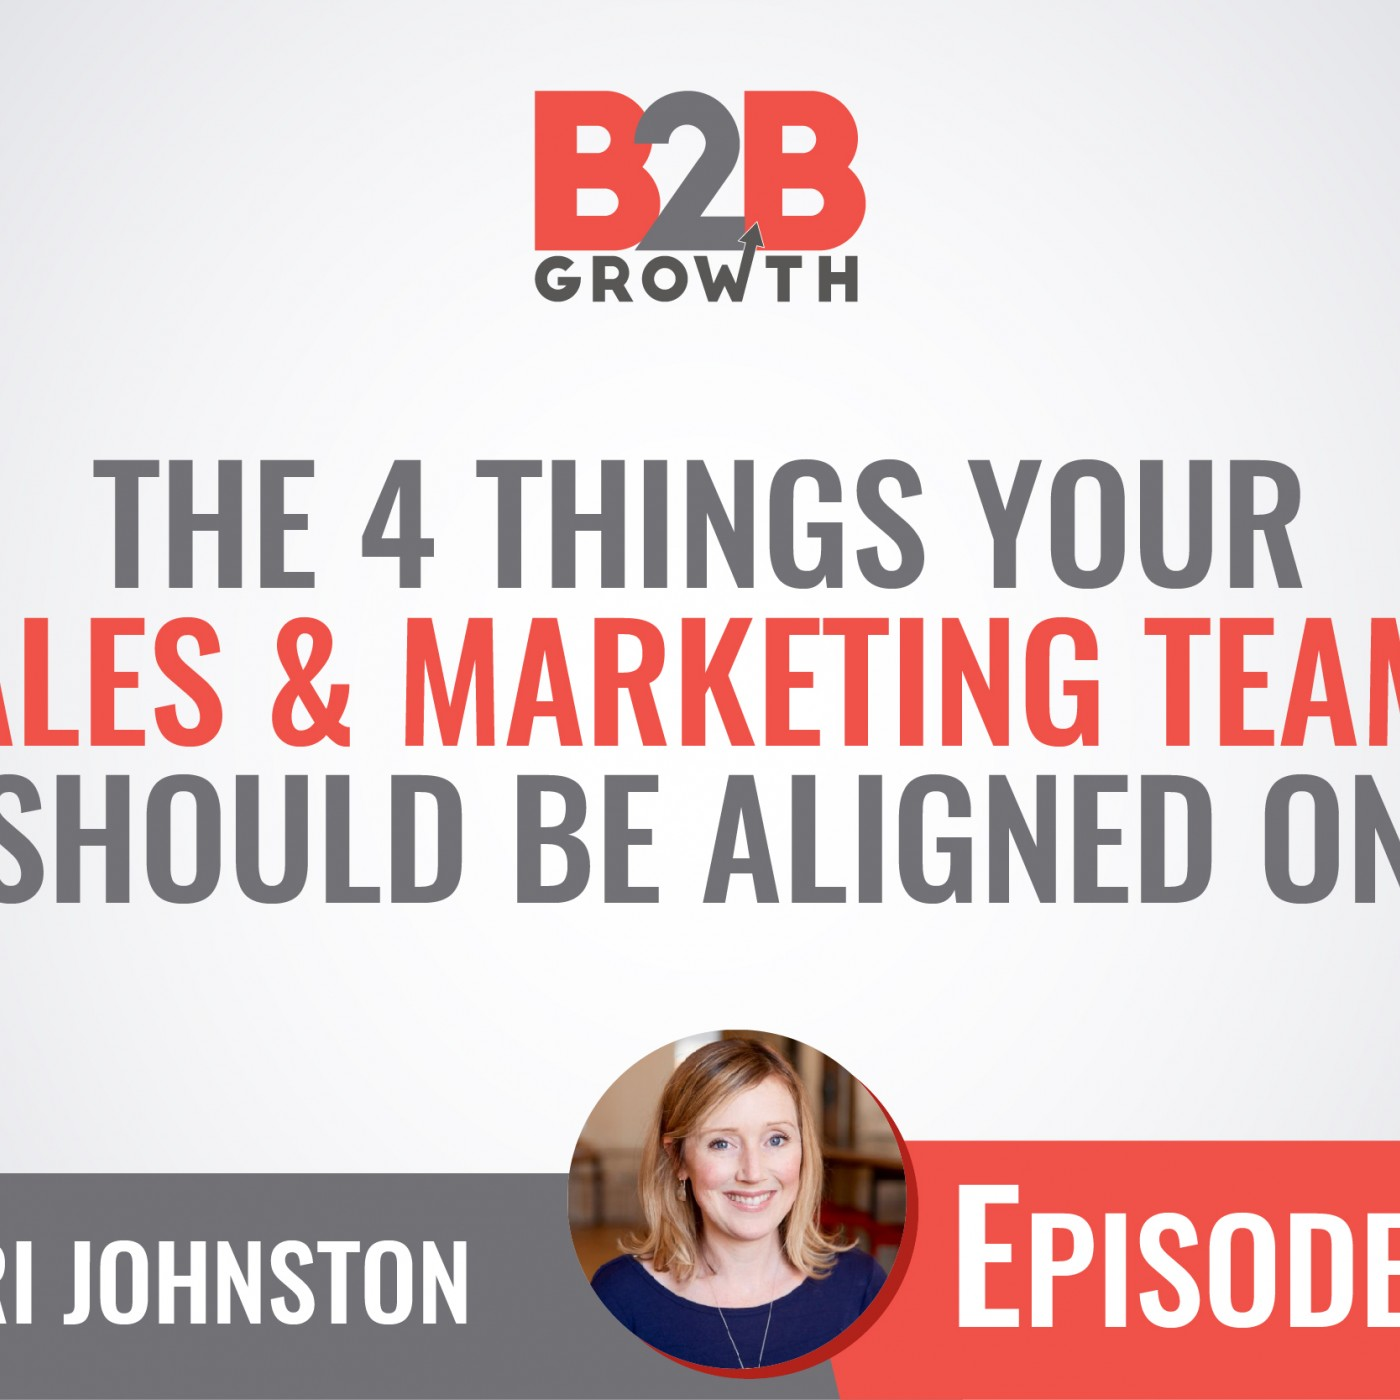 596: The 4 Things Your Sales & Marketing Teams Should Be Aligned On w/ Shari Johnston